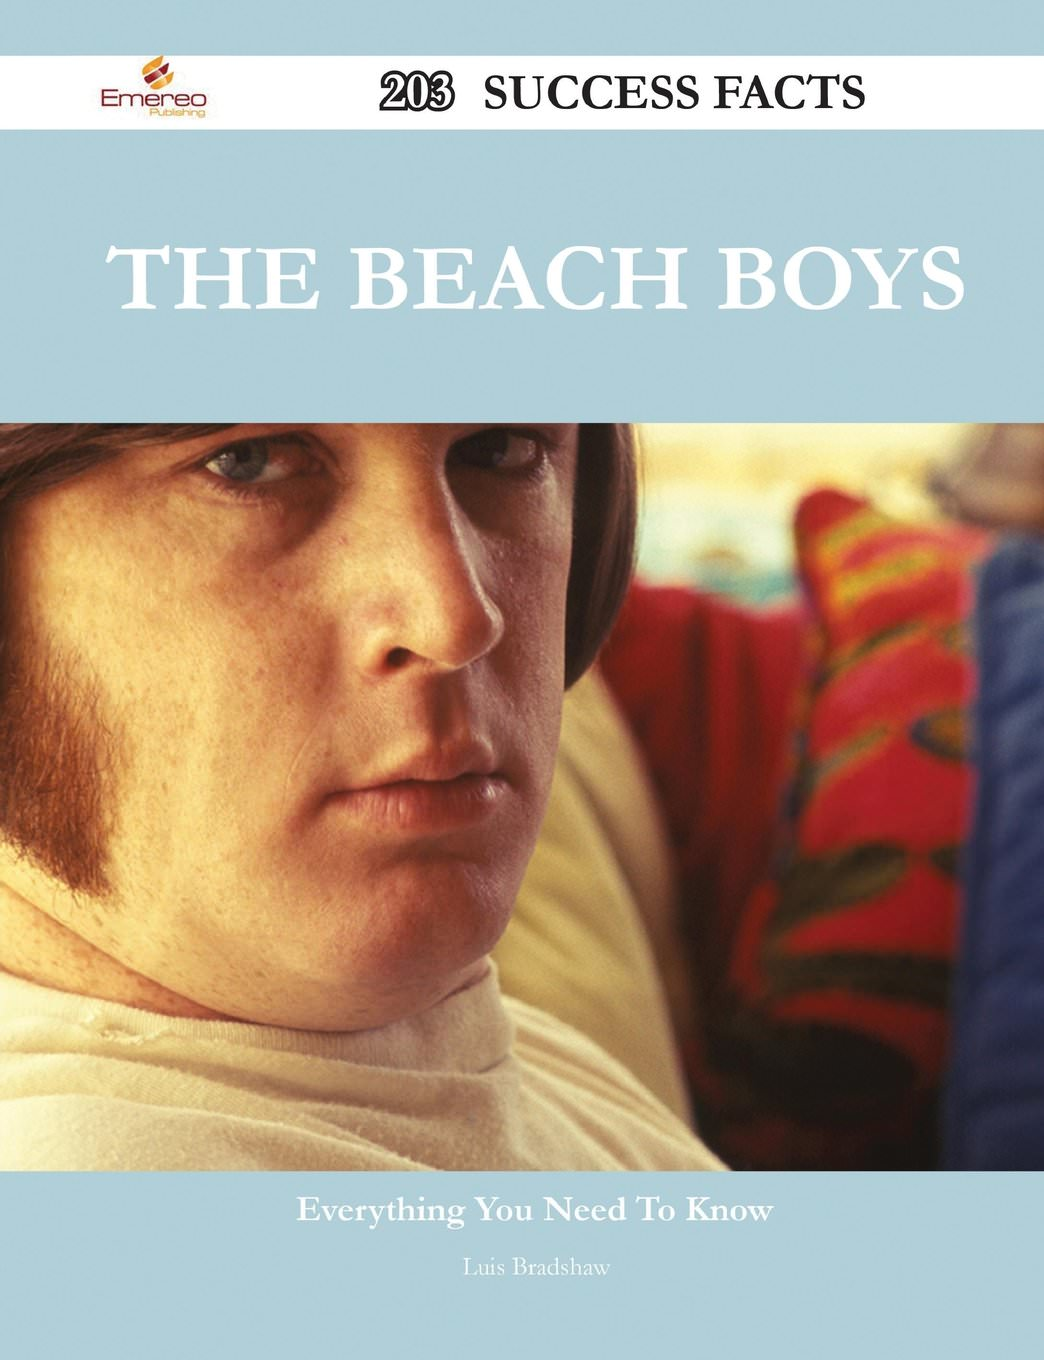 The Beach Boys: 203 Success Facts cover